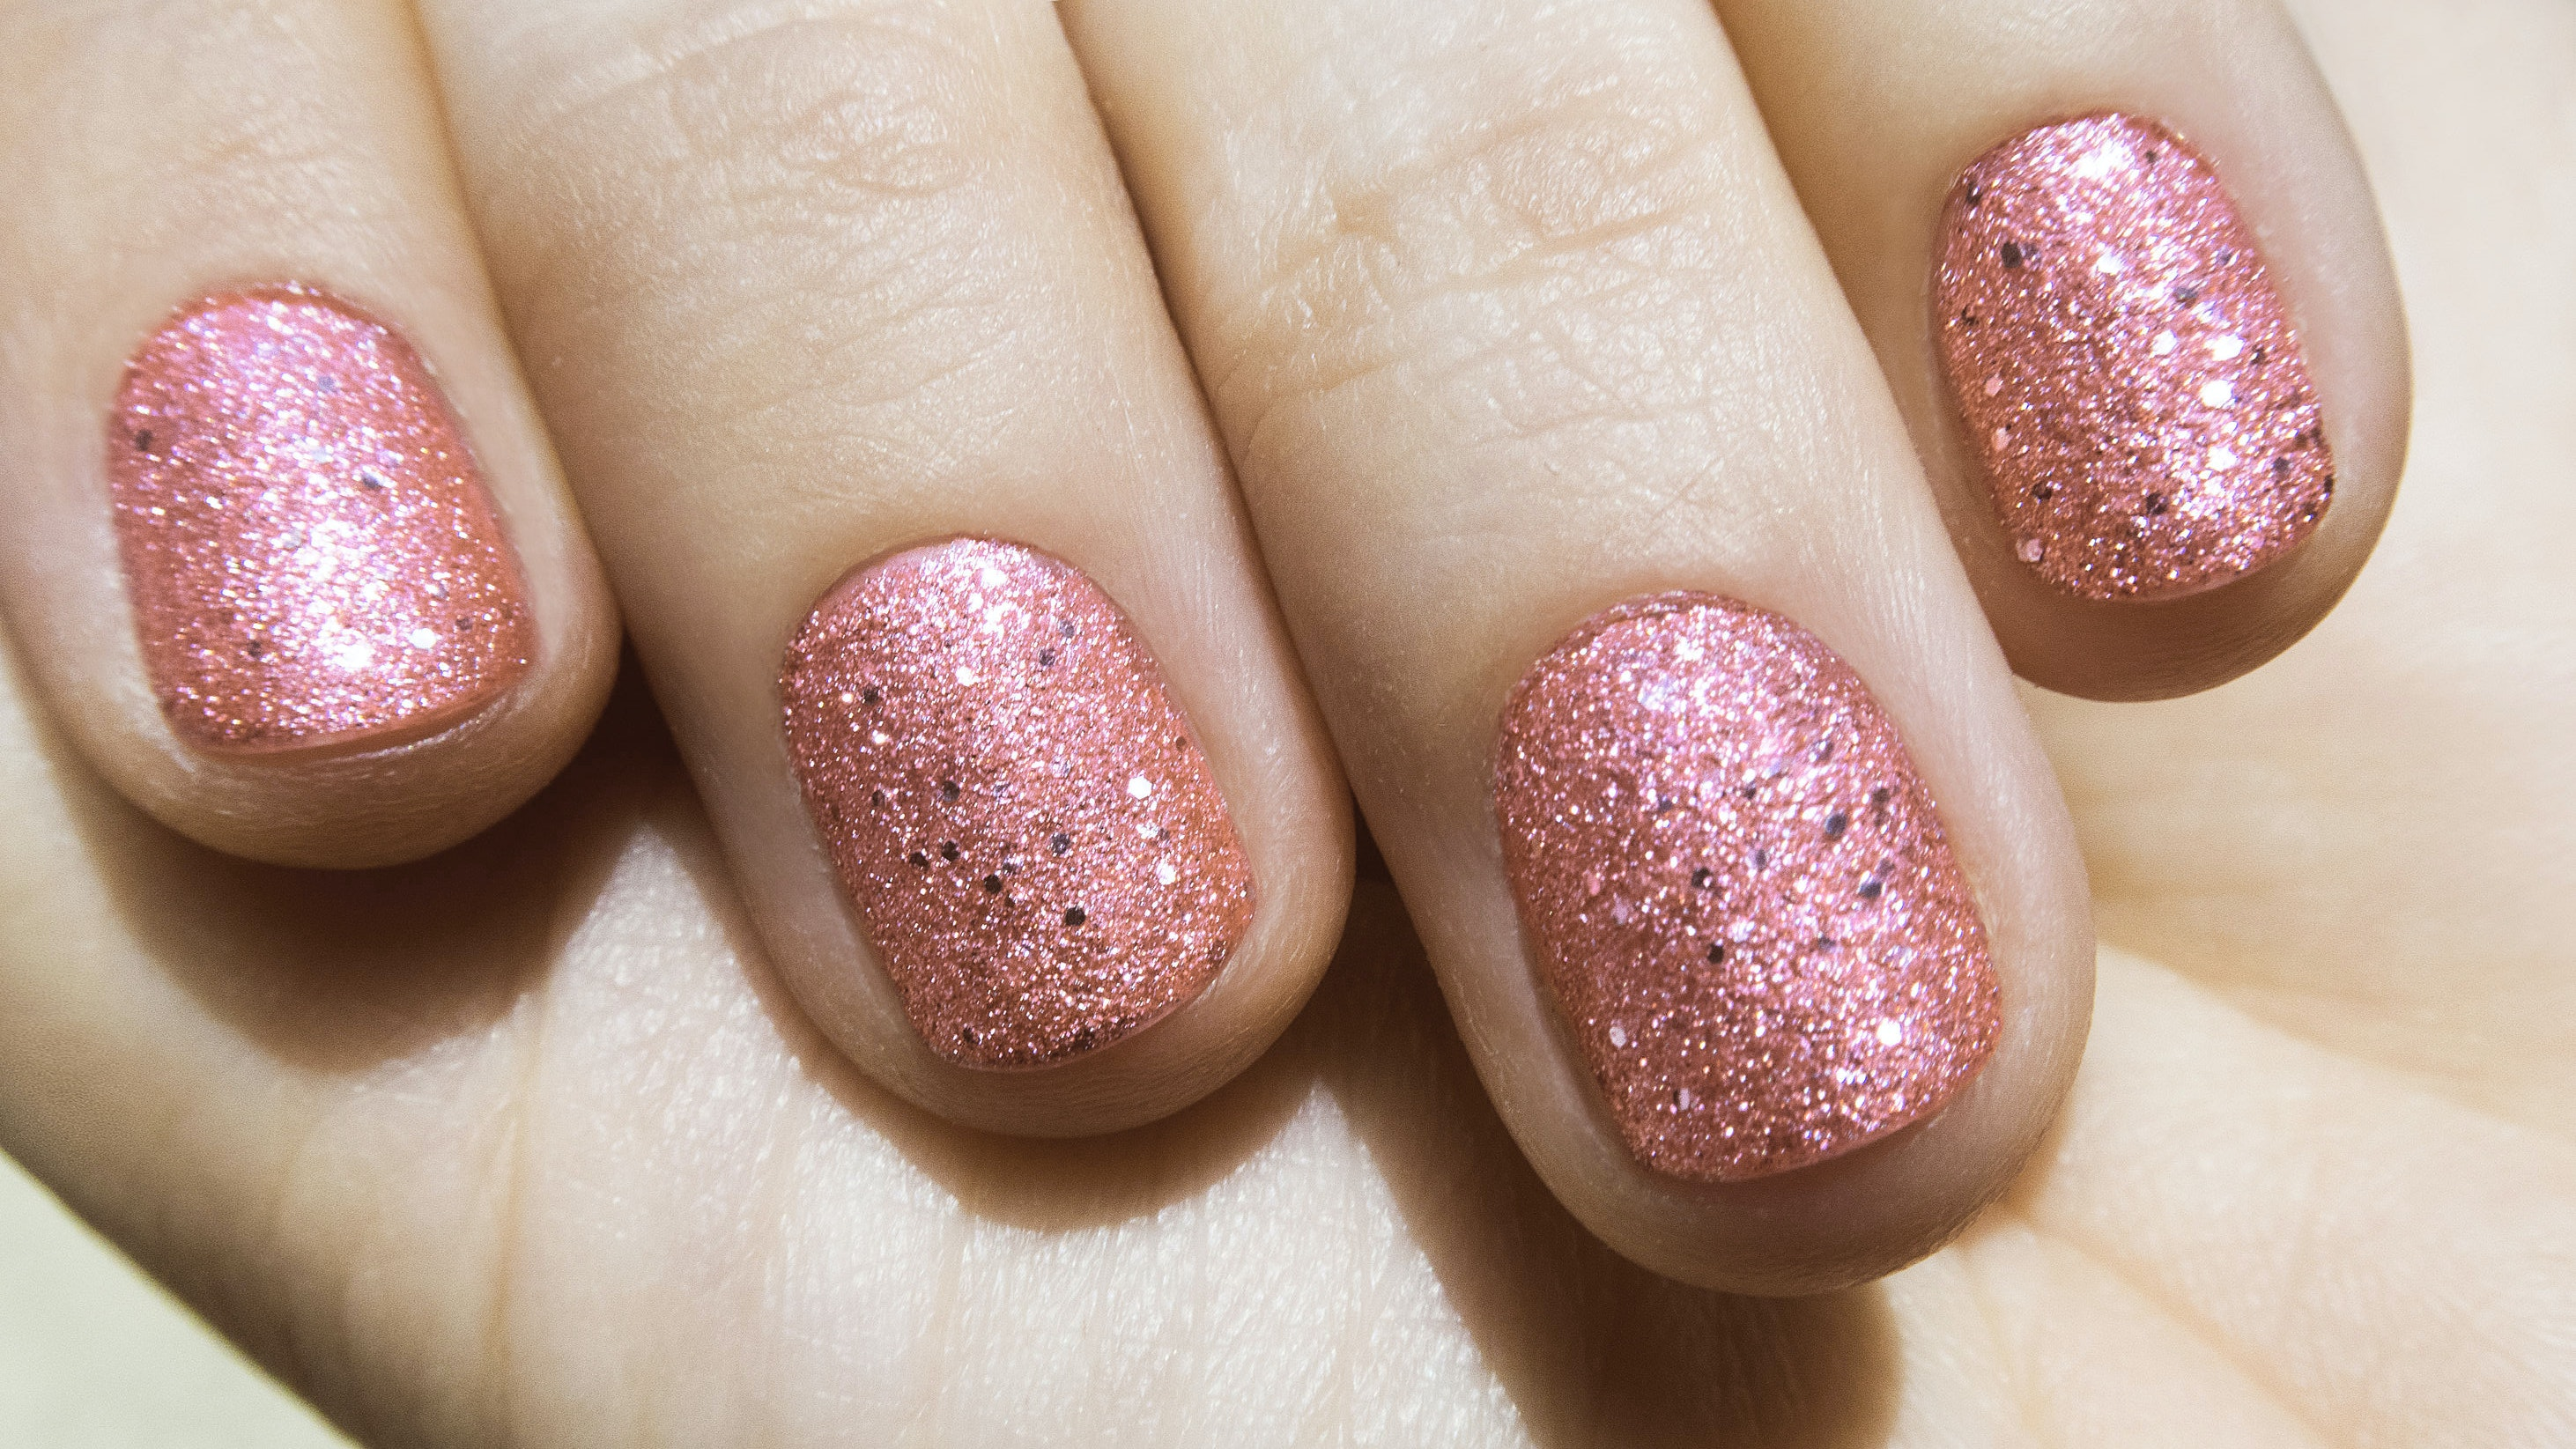 Spotlyte 7: Sophisticated Shimmery Products For Adults Who Love Glitter